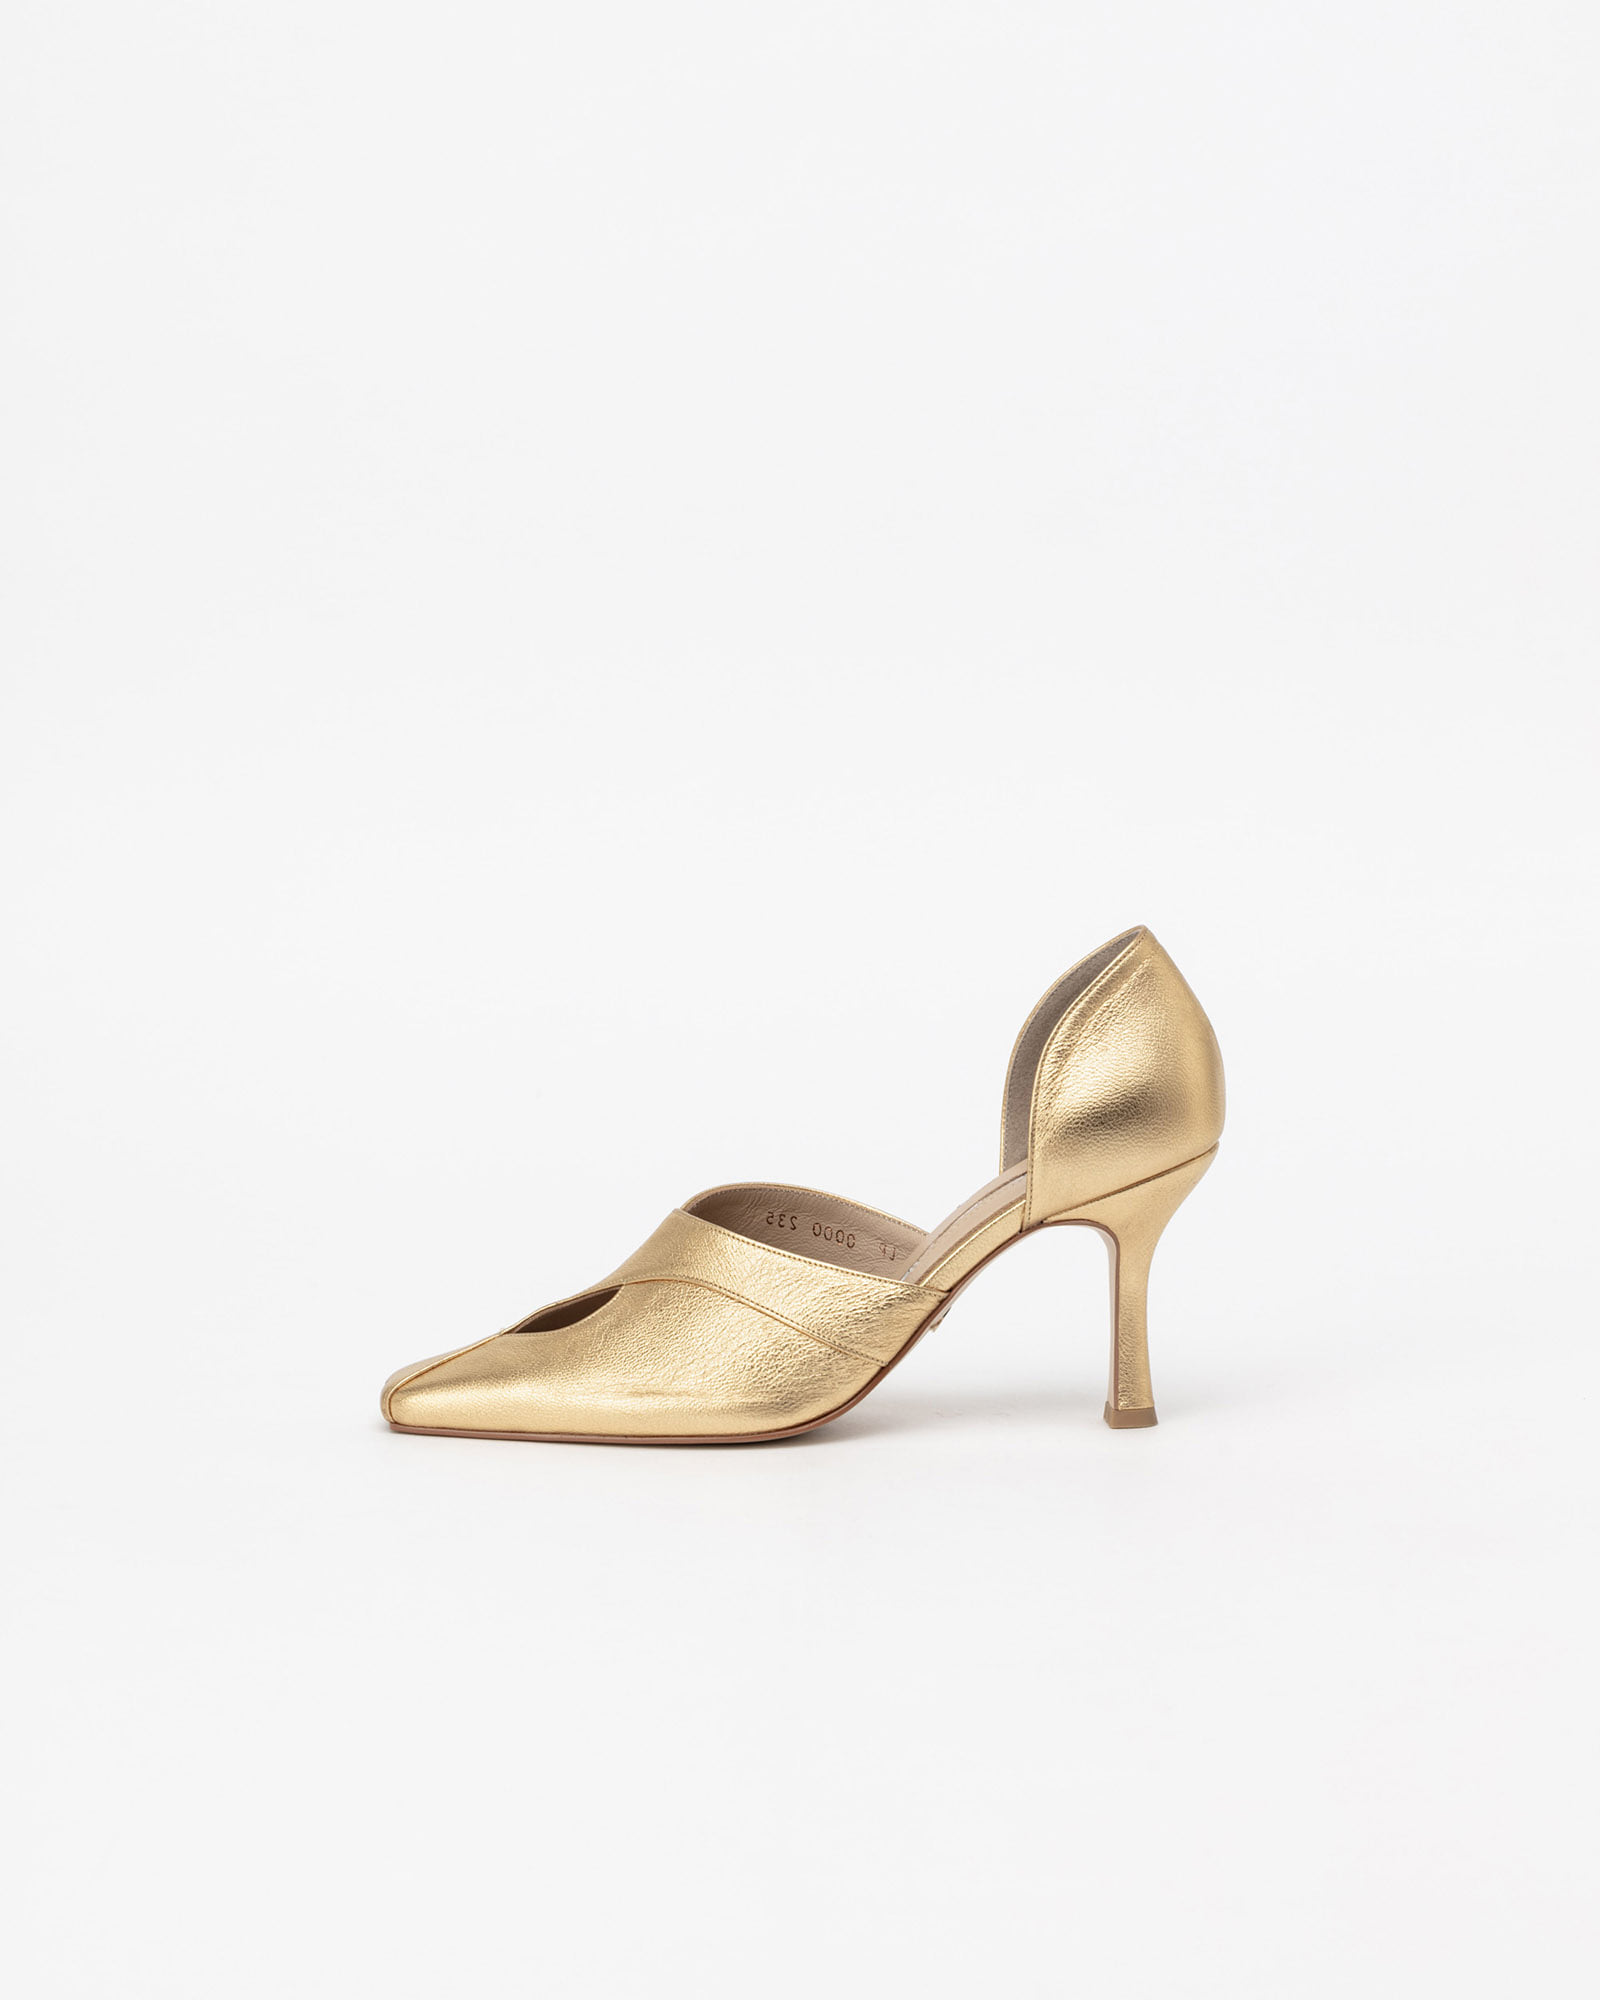 LeBon Pumps in Yellow Gold